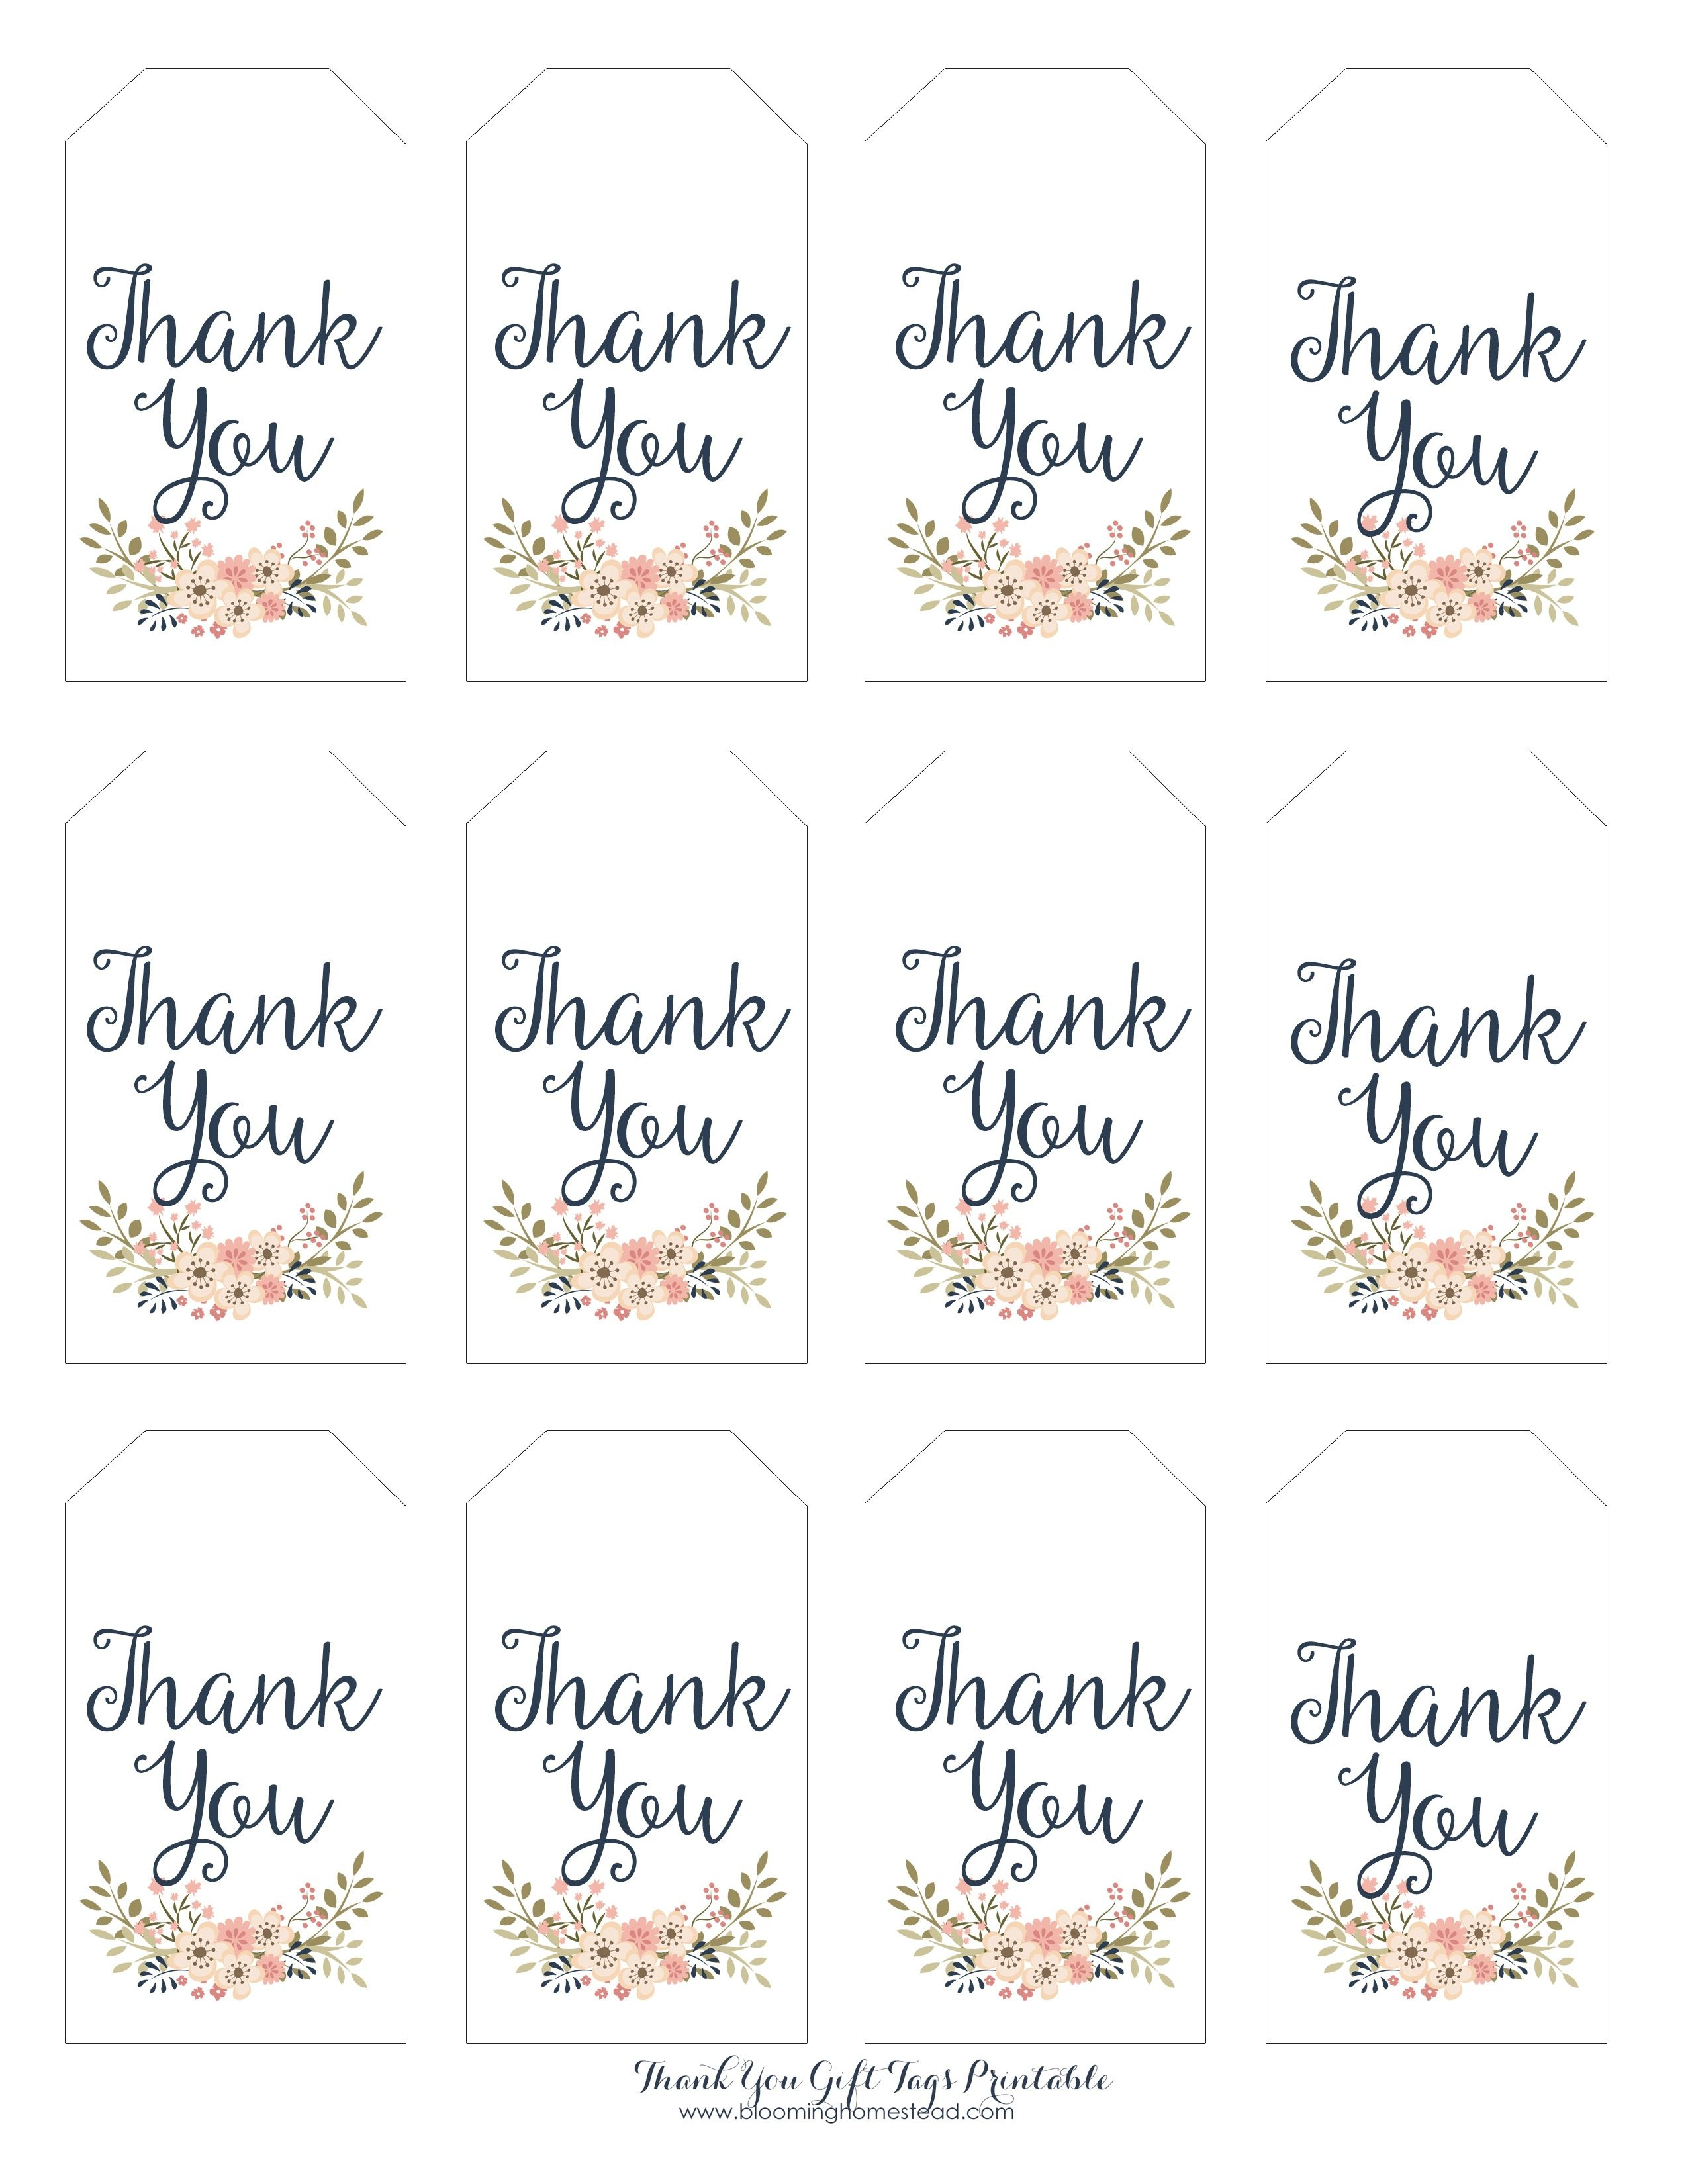 Thank You Gift Tags   Gift Ideas   Thank You Tag Printable - Free Printable Thank You Tags